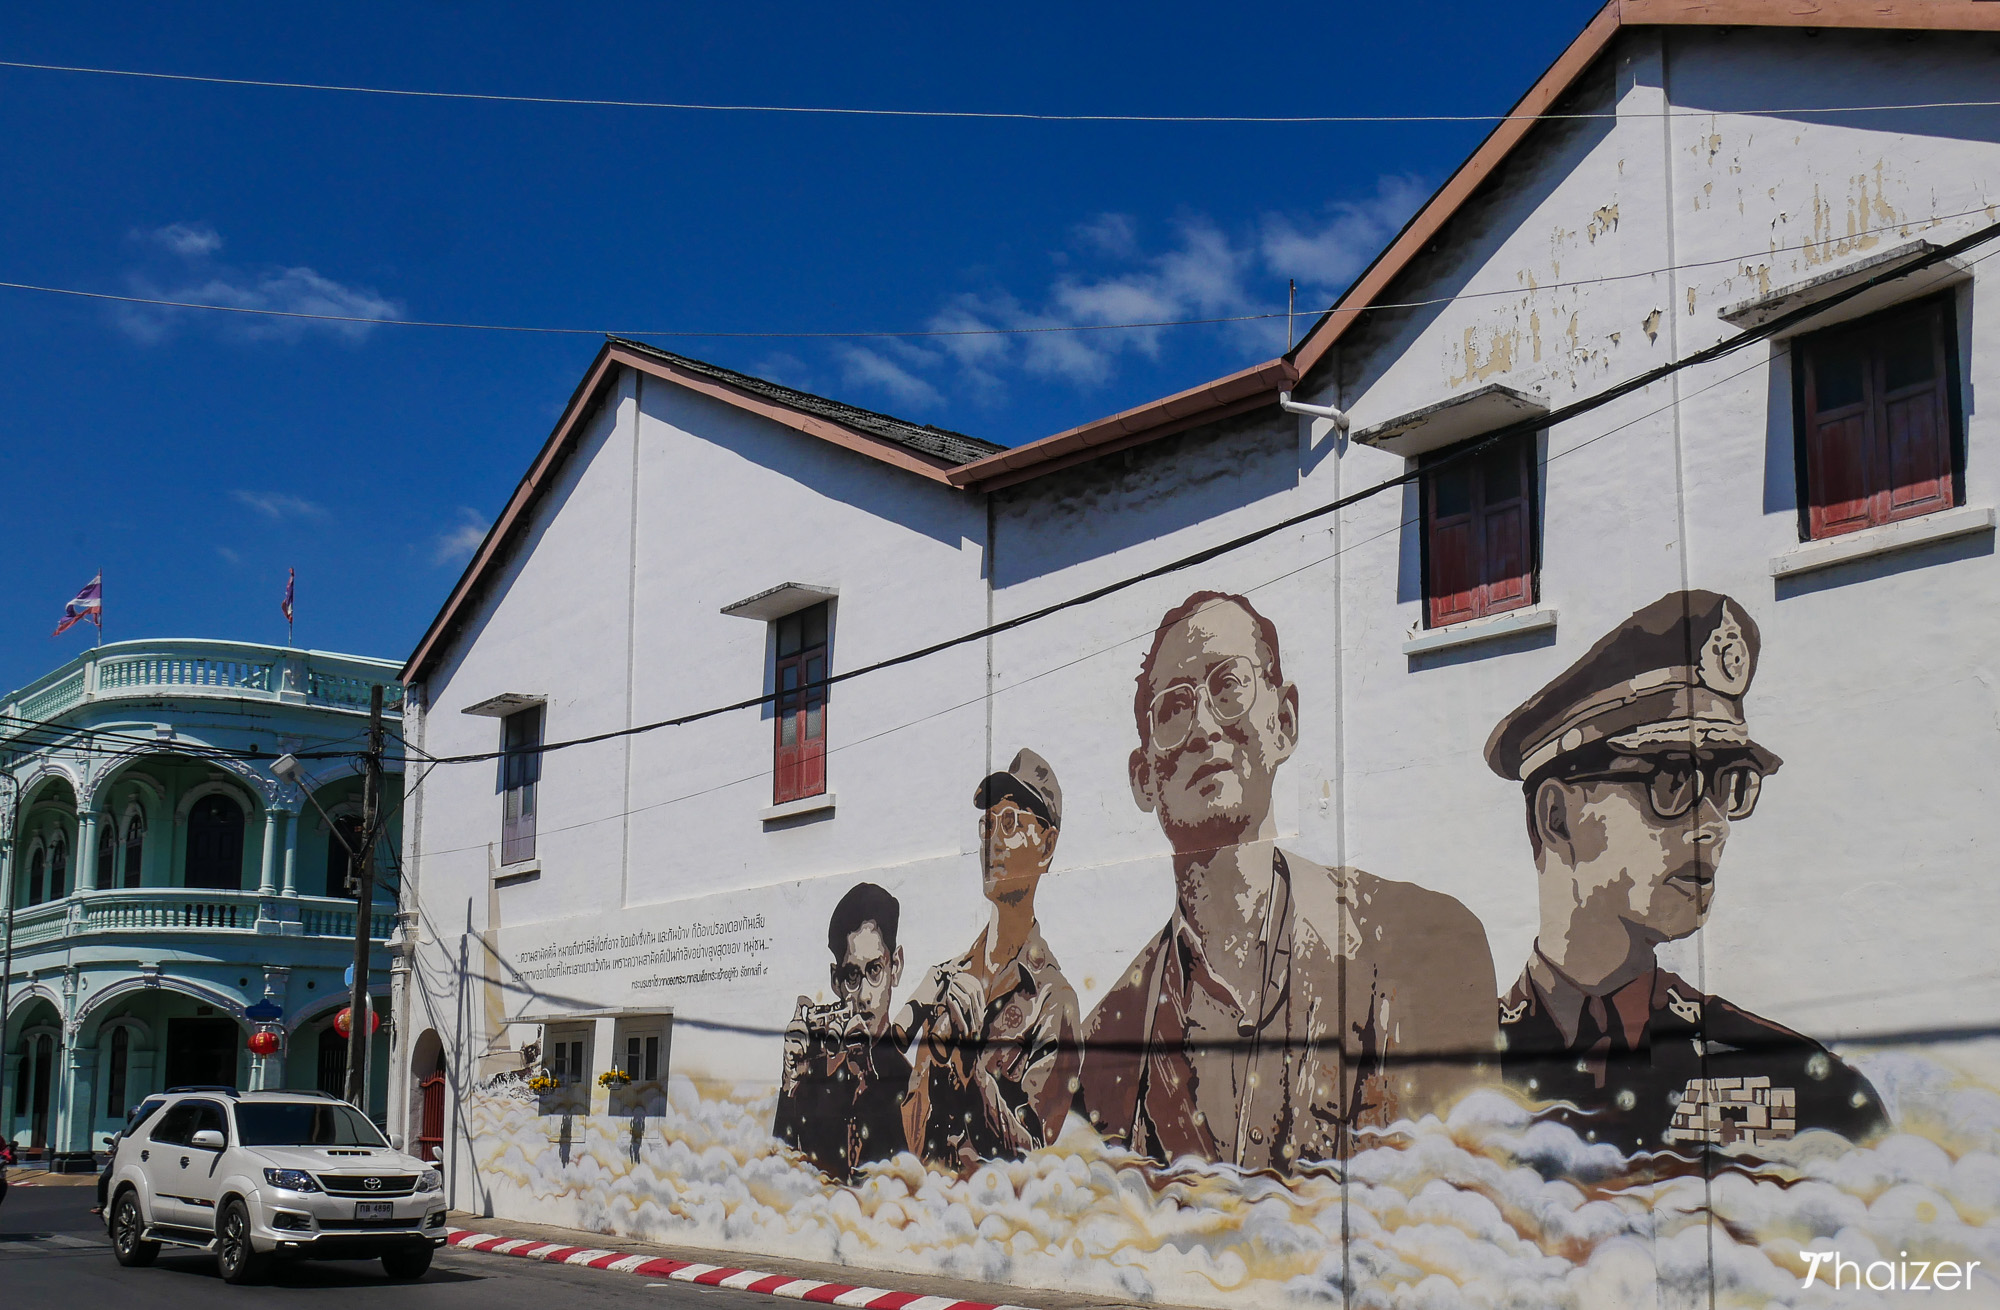 In Remembrance of His Majesty King Bhumibol Adulyadej, artwork in Phuket Town